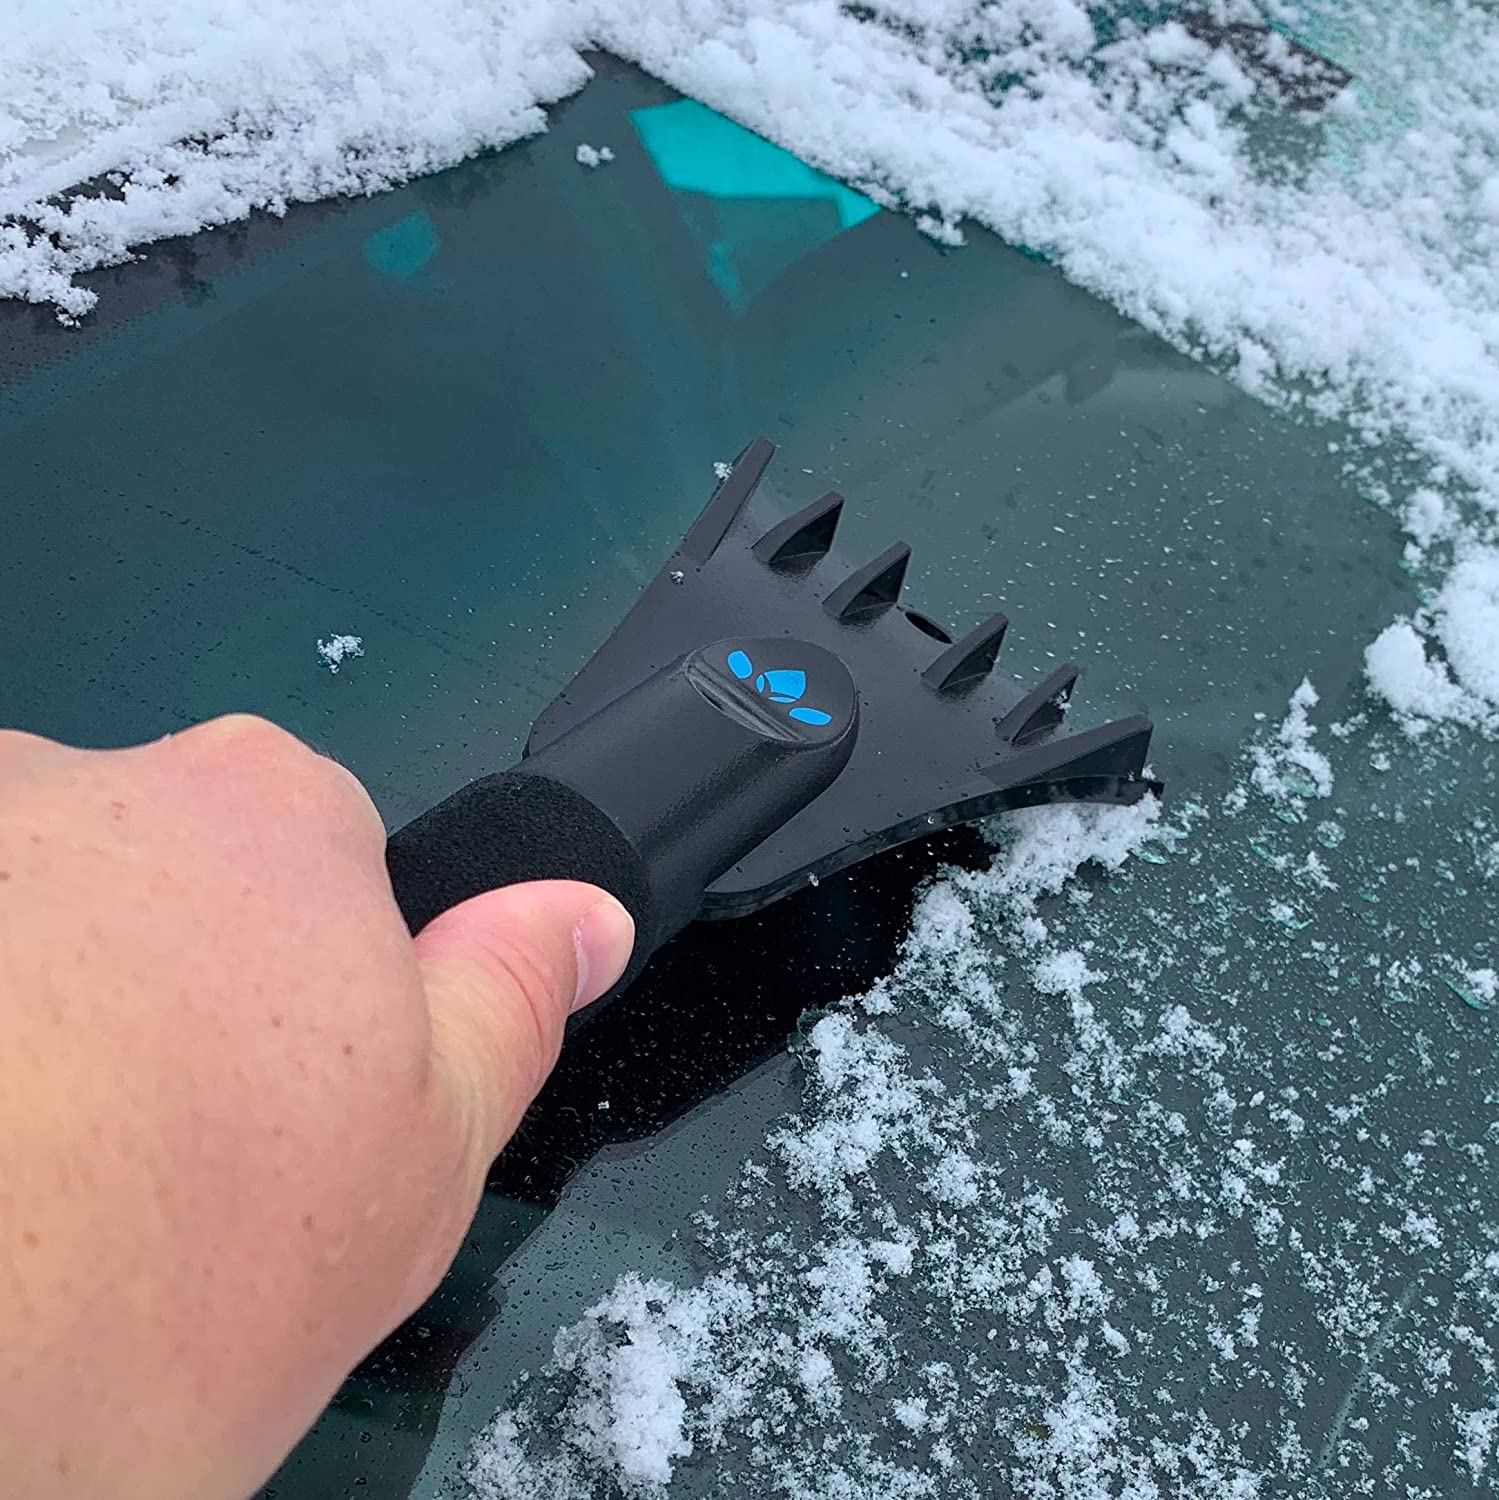 Ice Snow Perfect for Car Windshields /& Windows | | Easily Removes Frost EVERSPROUT Twist-On SnowBuster Ice Scraper Pole Not Included Twists onto Standard US Threaded Pole 3//4-inch Acme